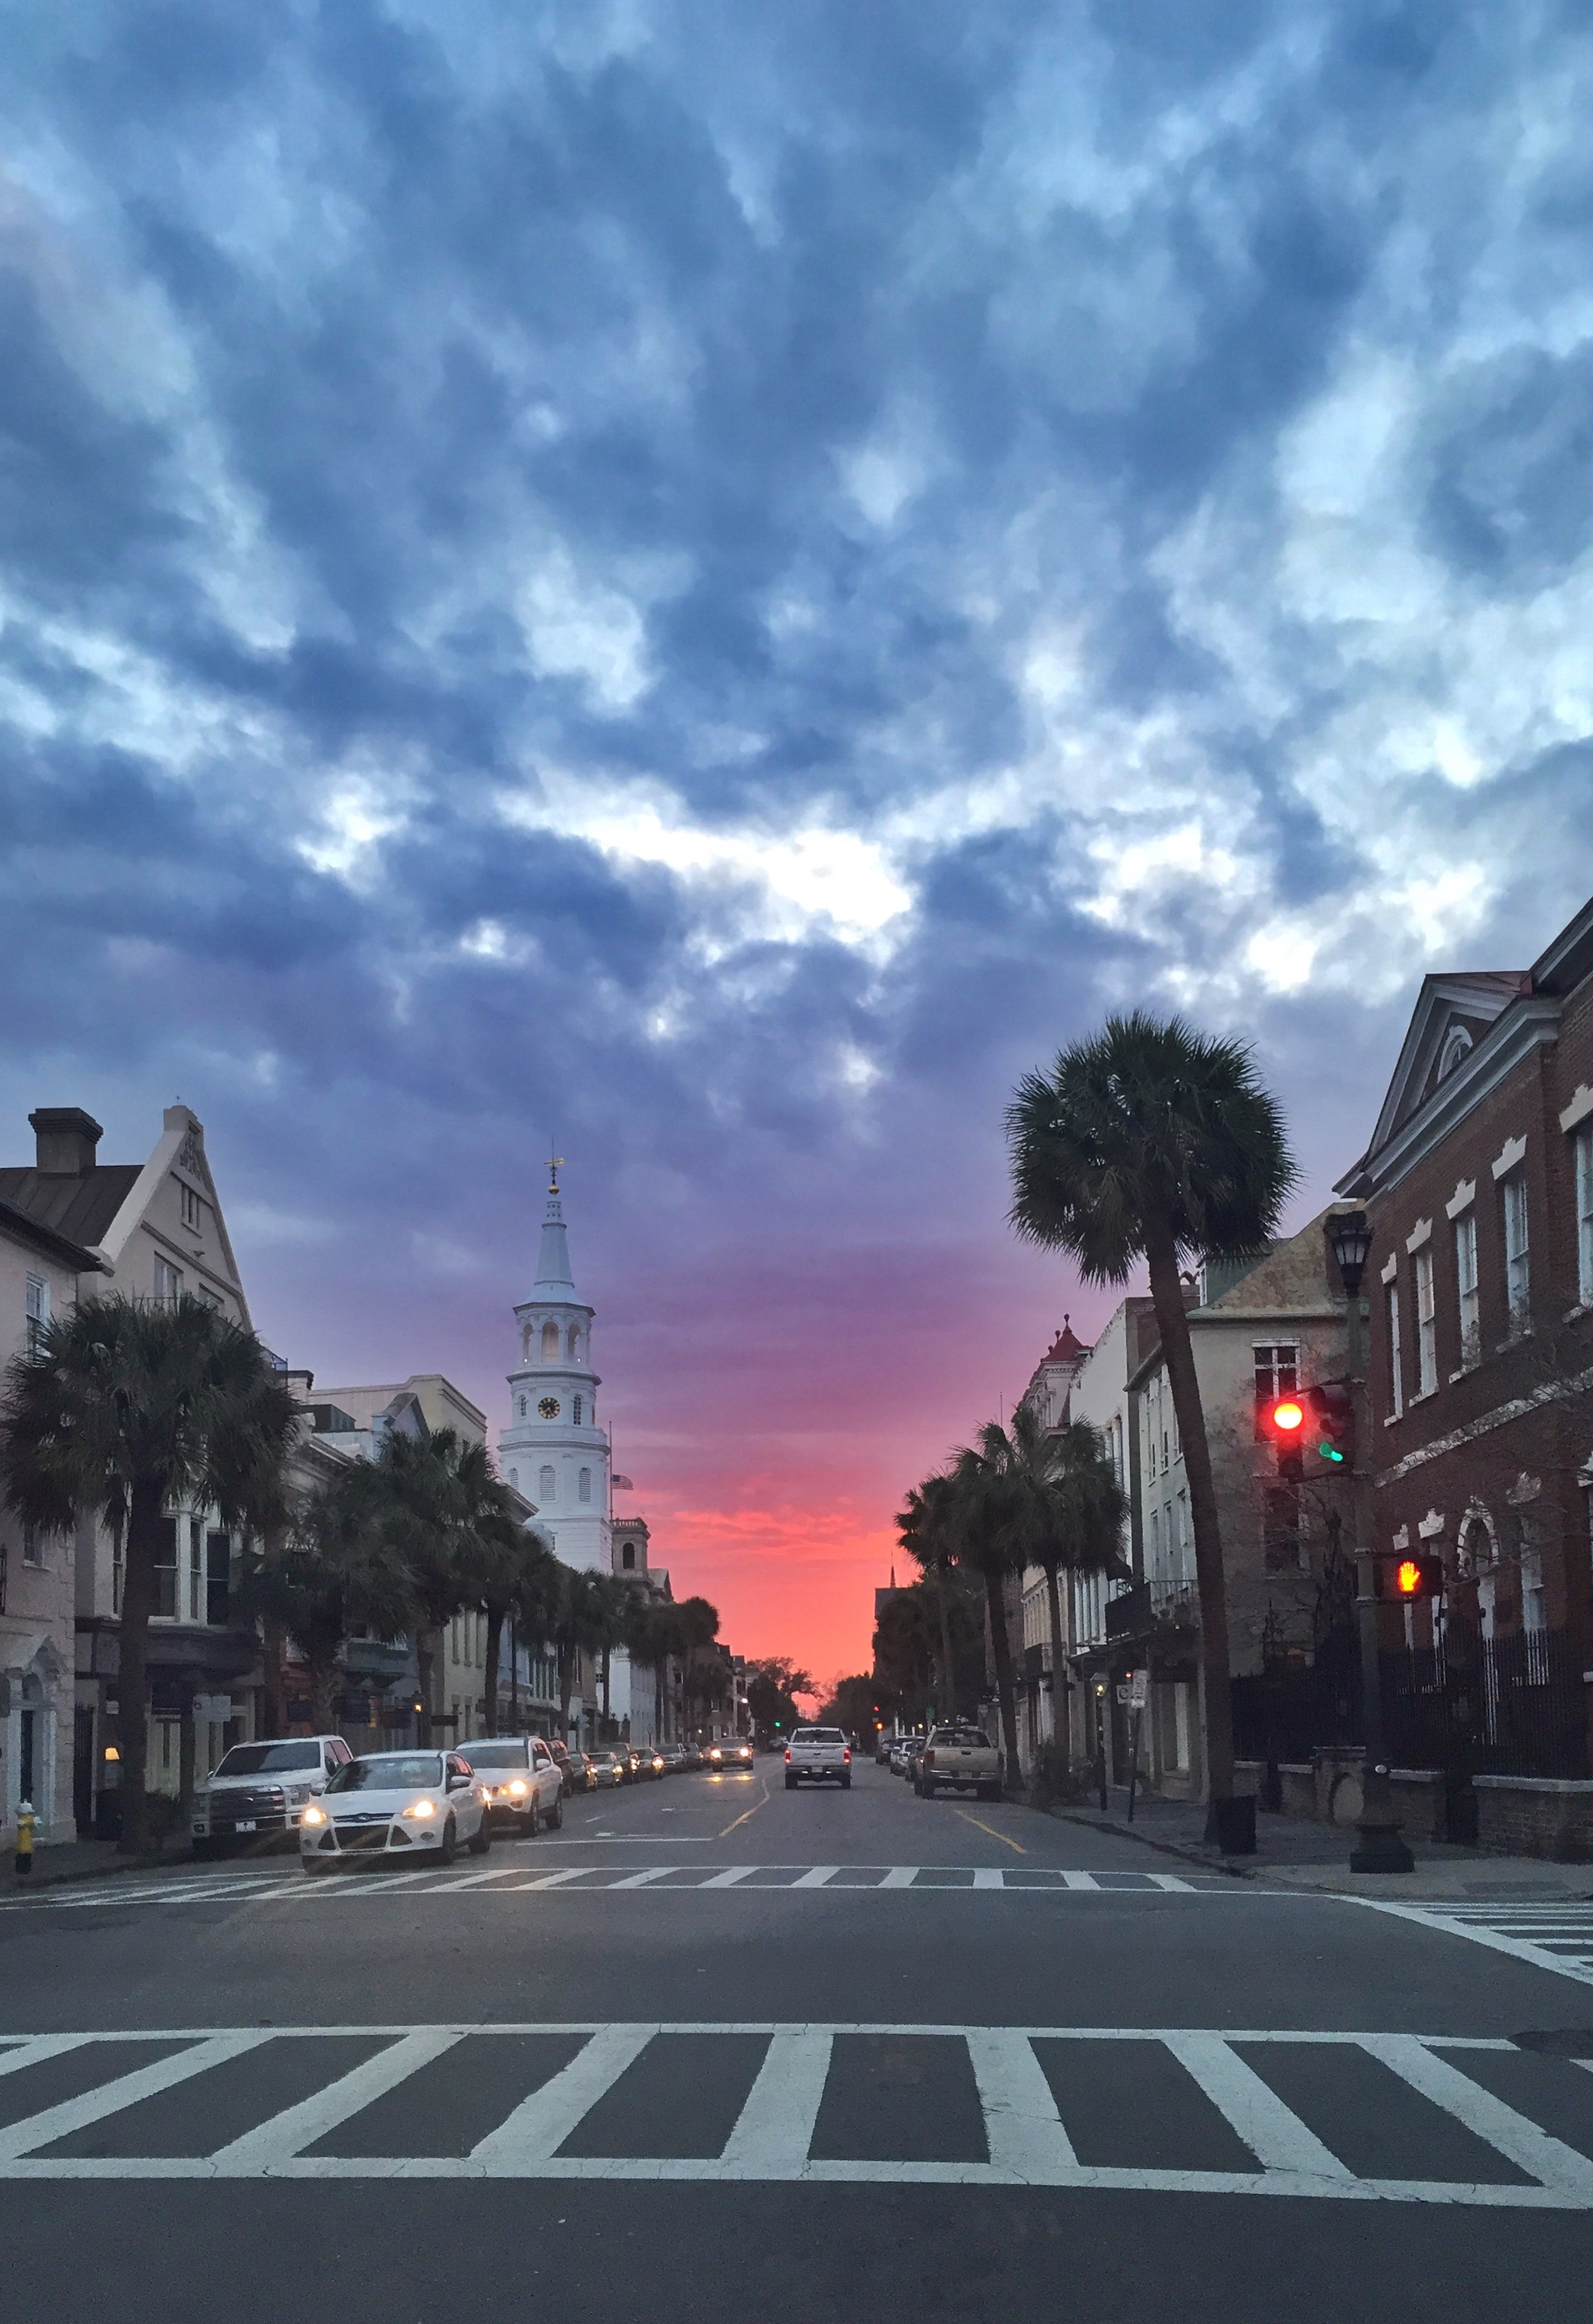 """HONORABLE MENTION Amateur category: Sunset on Broad by Joanna Walker; """"This image was taken as the sun was setting over Broad Street on March 13 at about 7:25. I was driving and just in awe of what was in front of me. Luckily I got stopped at this red light so I had the chance to snap this picture."""""""